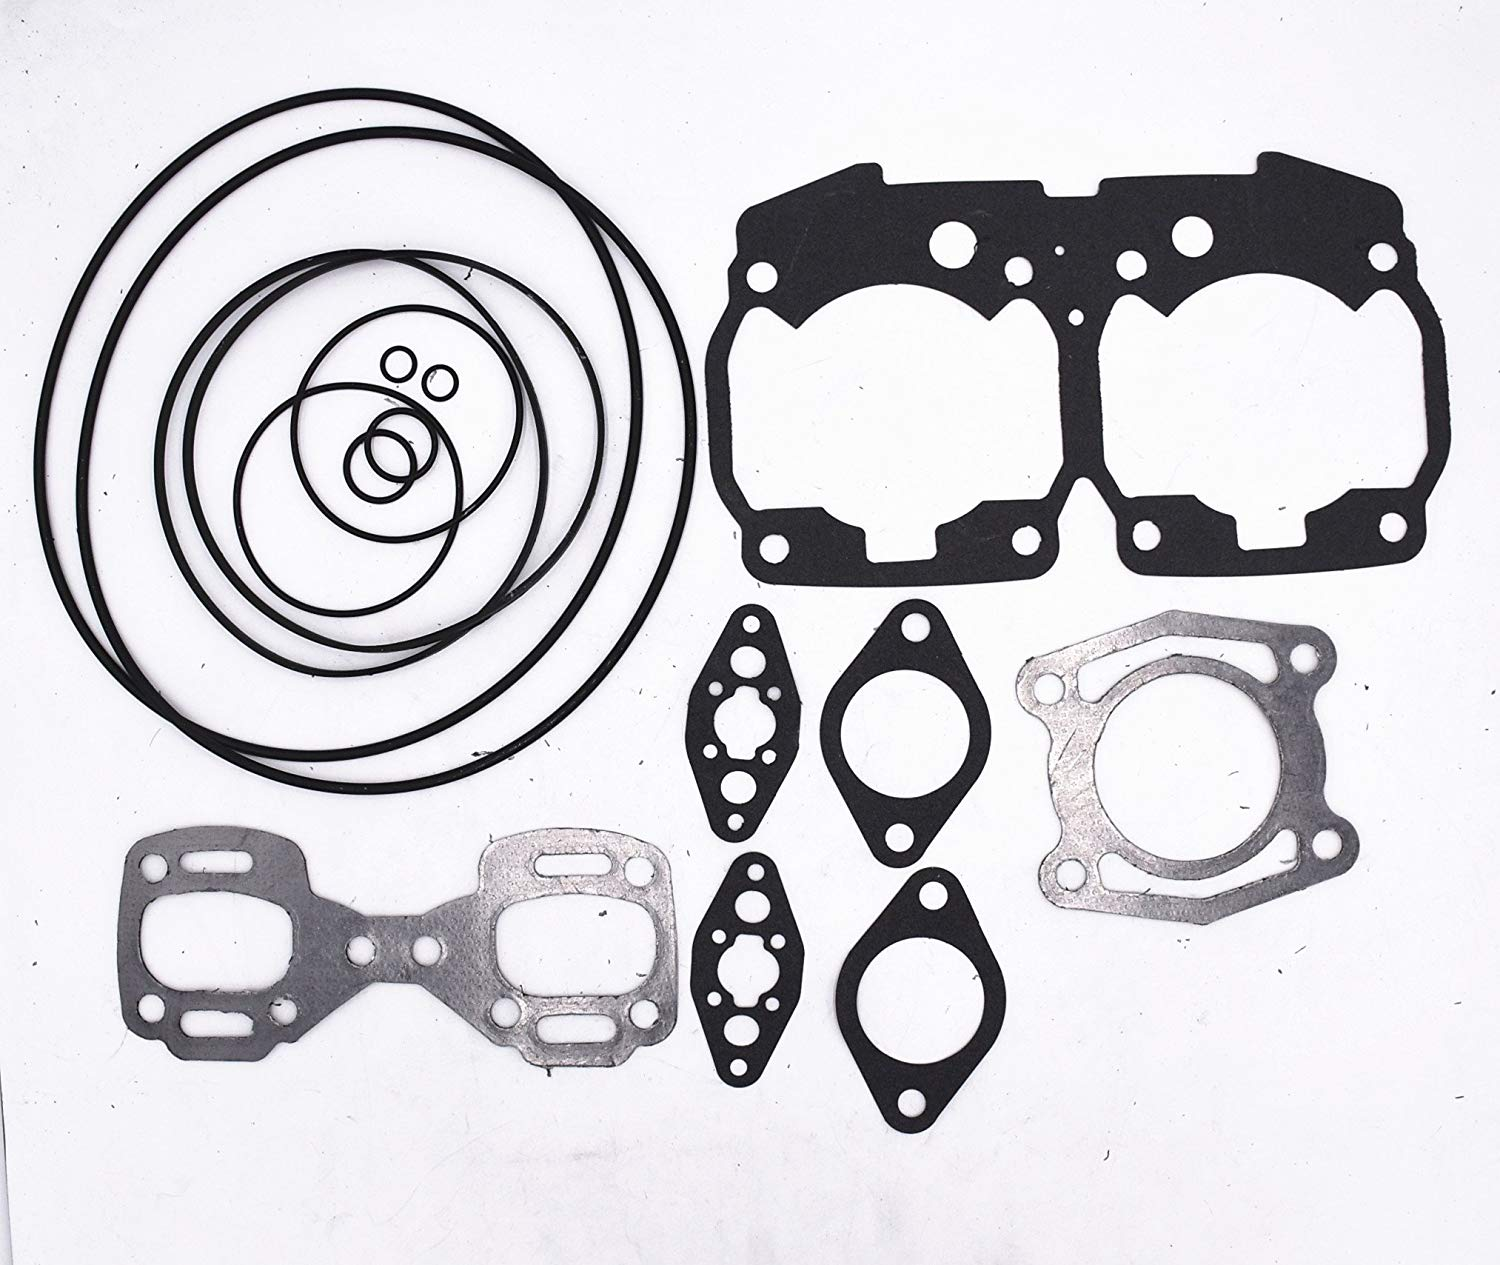 Top End Gasket Kit fit for SeaDoo 787/800 GSX GTX XP SPX